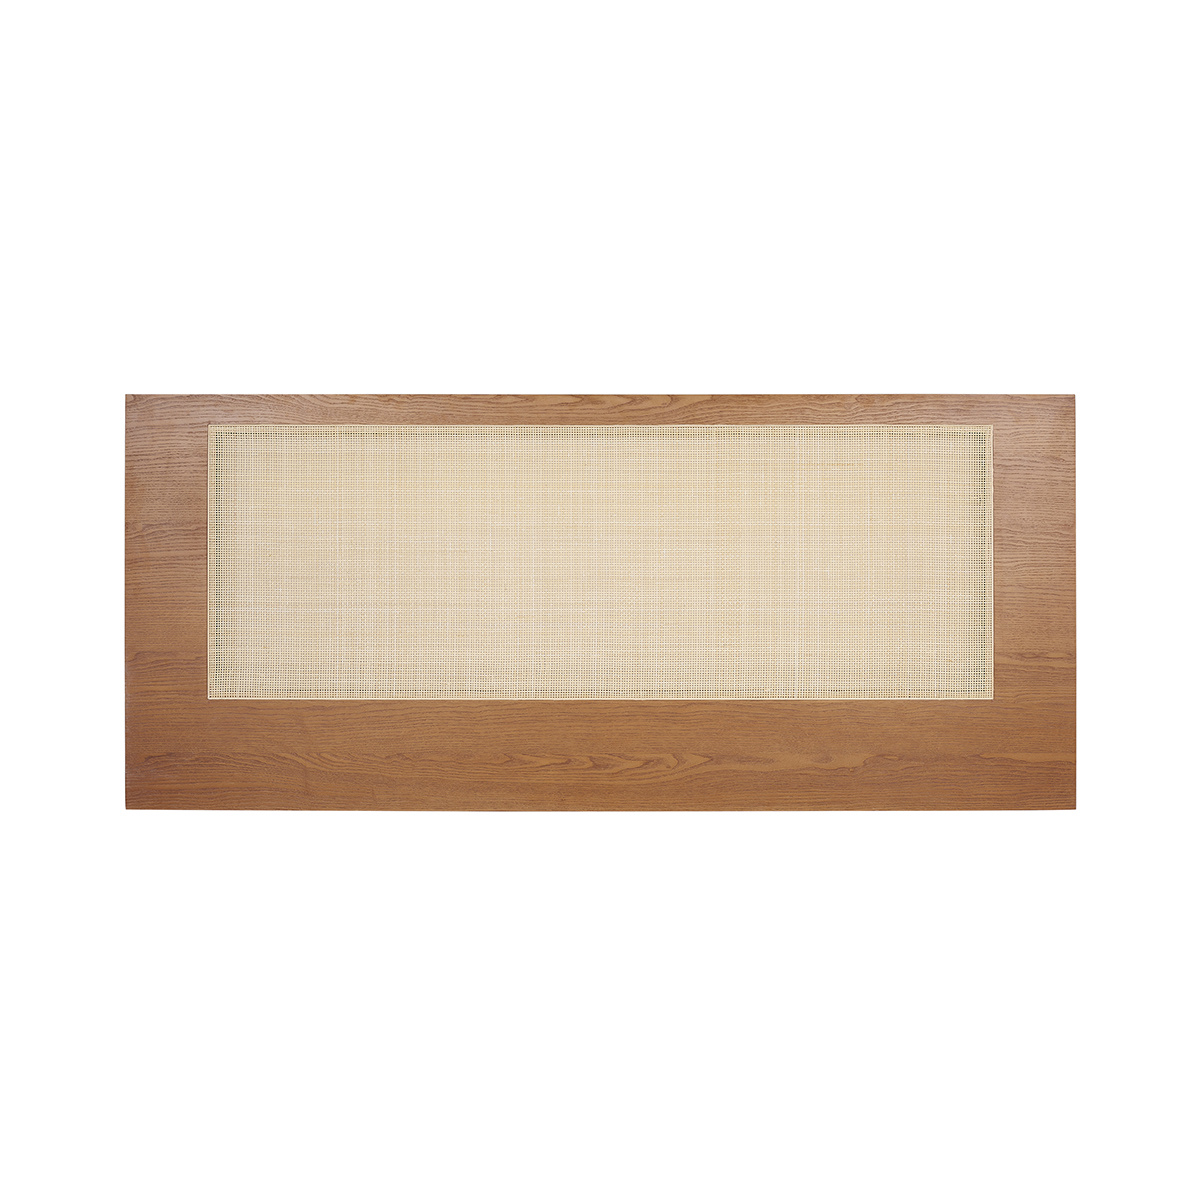 Double Bed Headboard Sogno, Cherrywood Finish